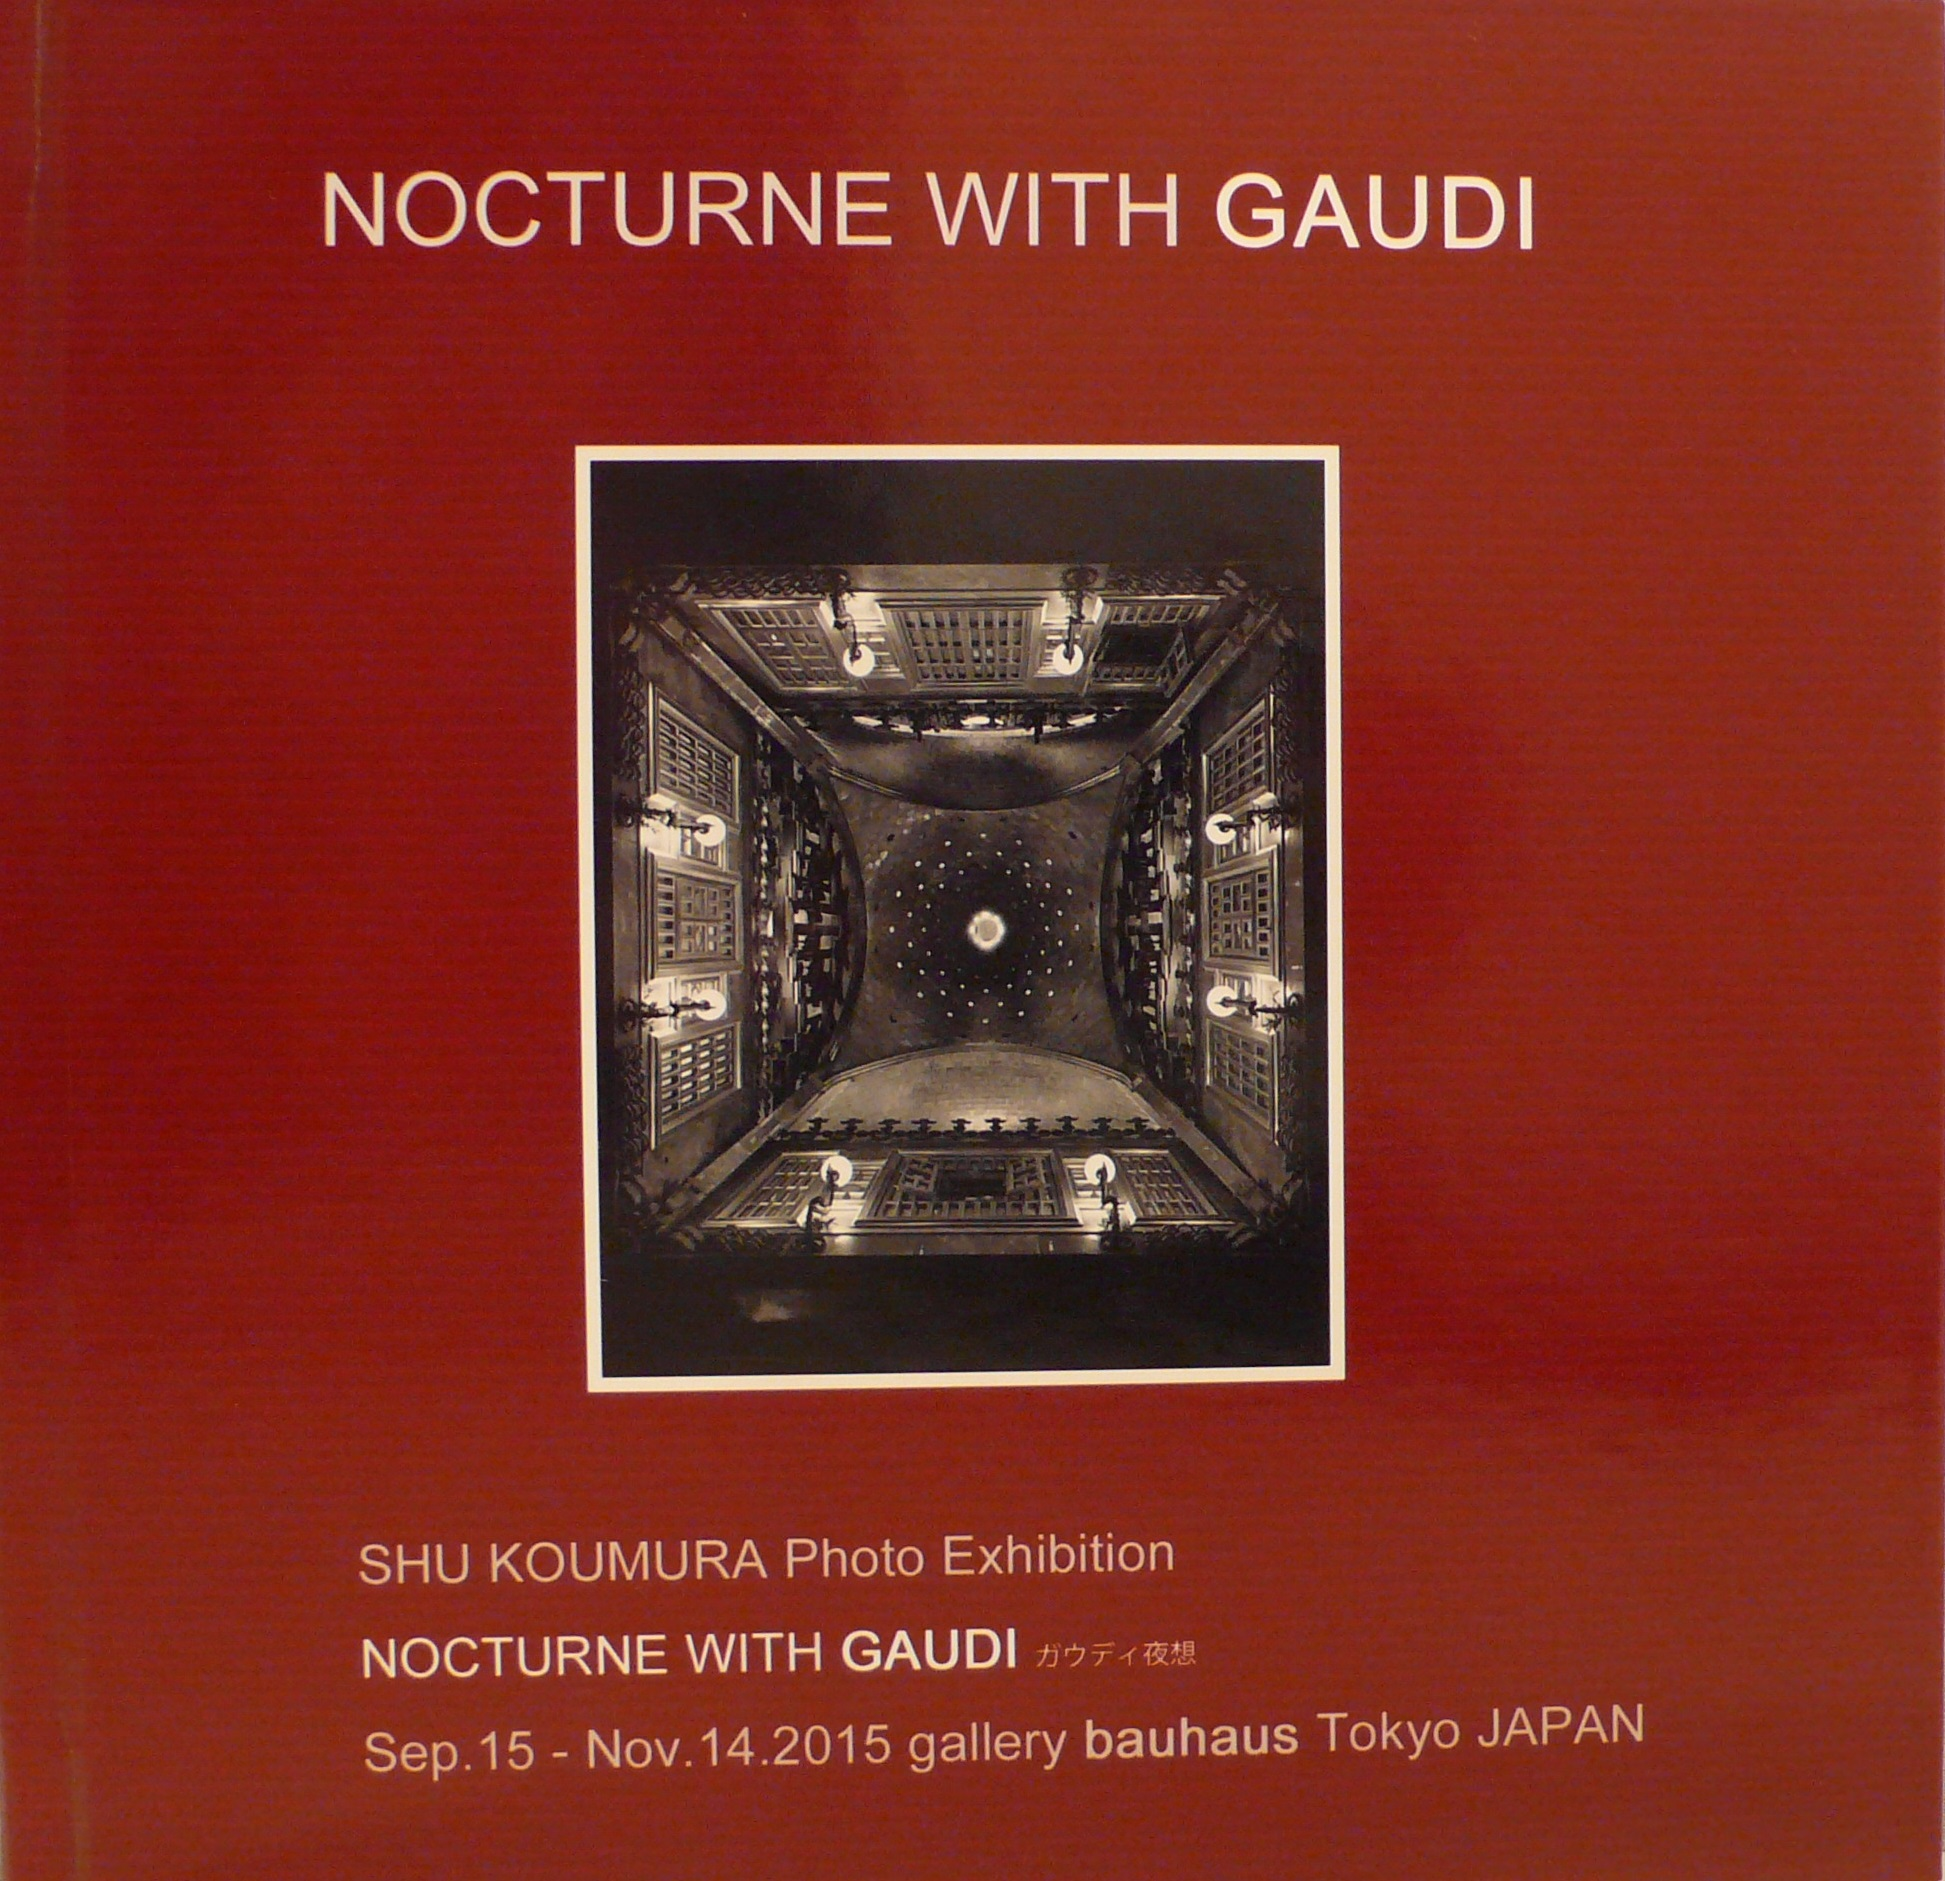 NOCTURNE WITH GAUDI